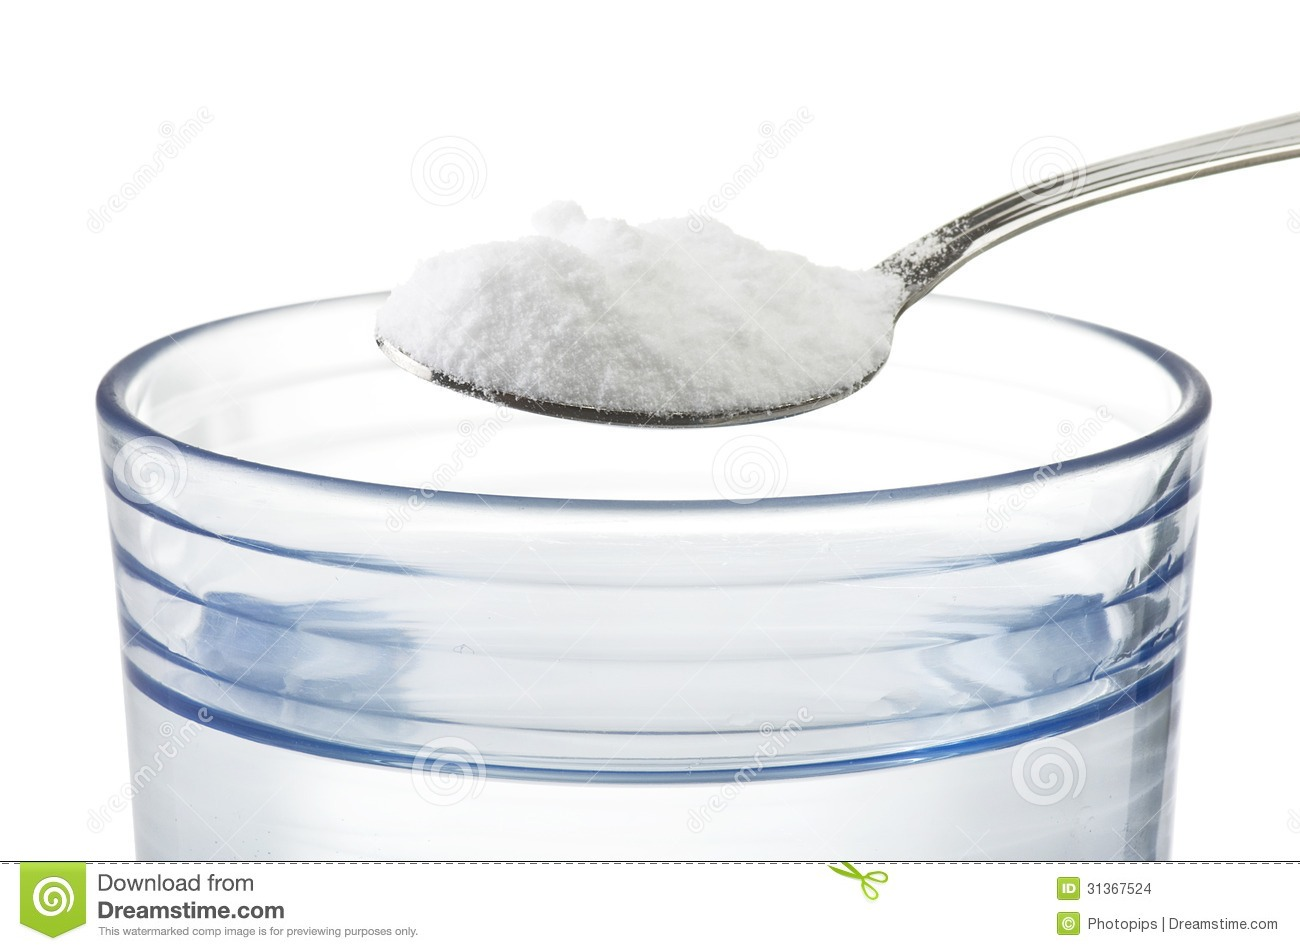 Place a tablespoon of baking soda into the bowl.